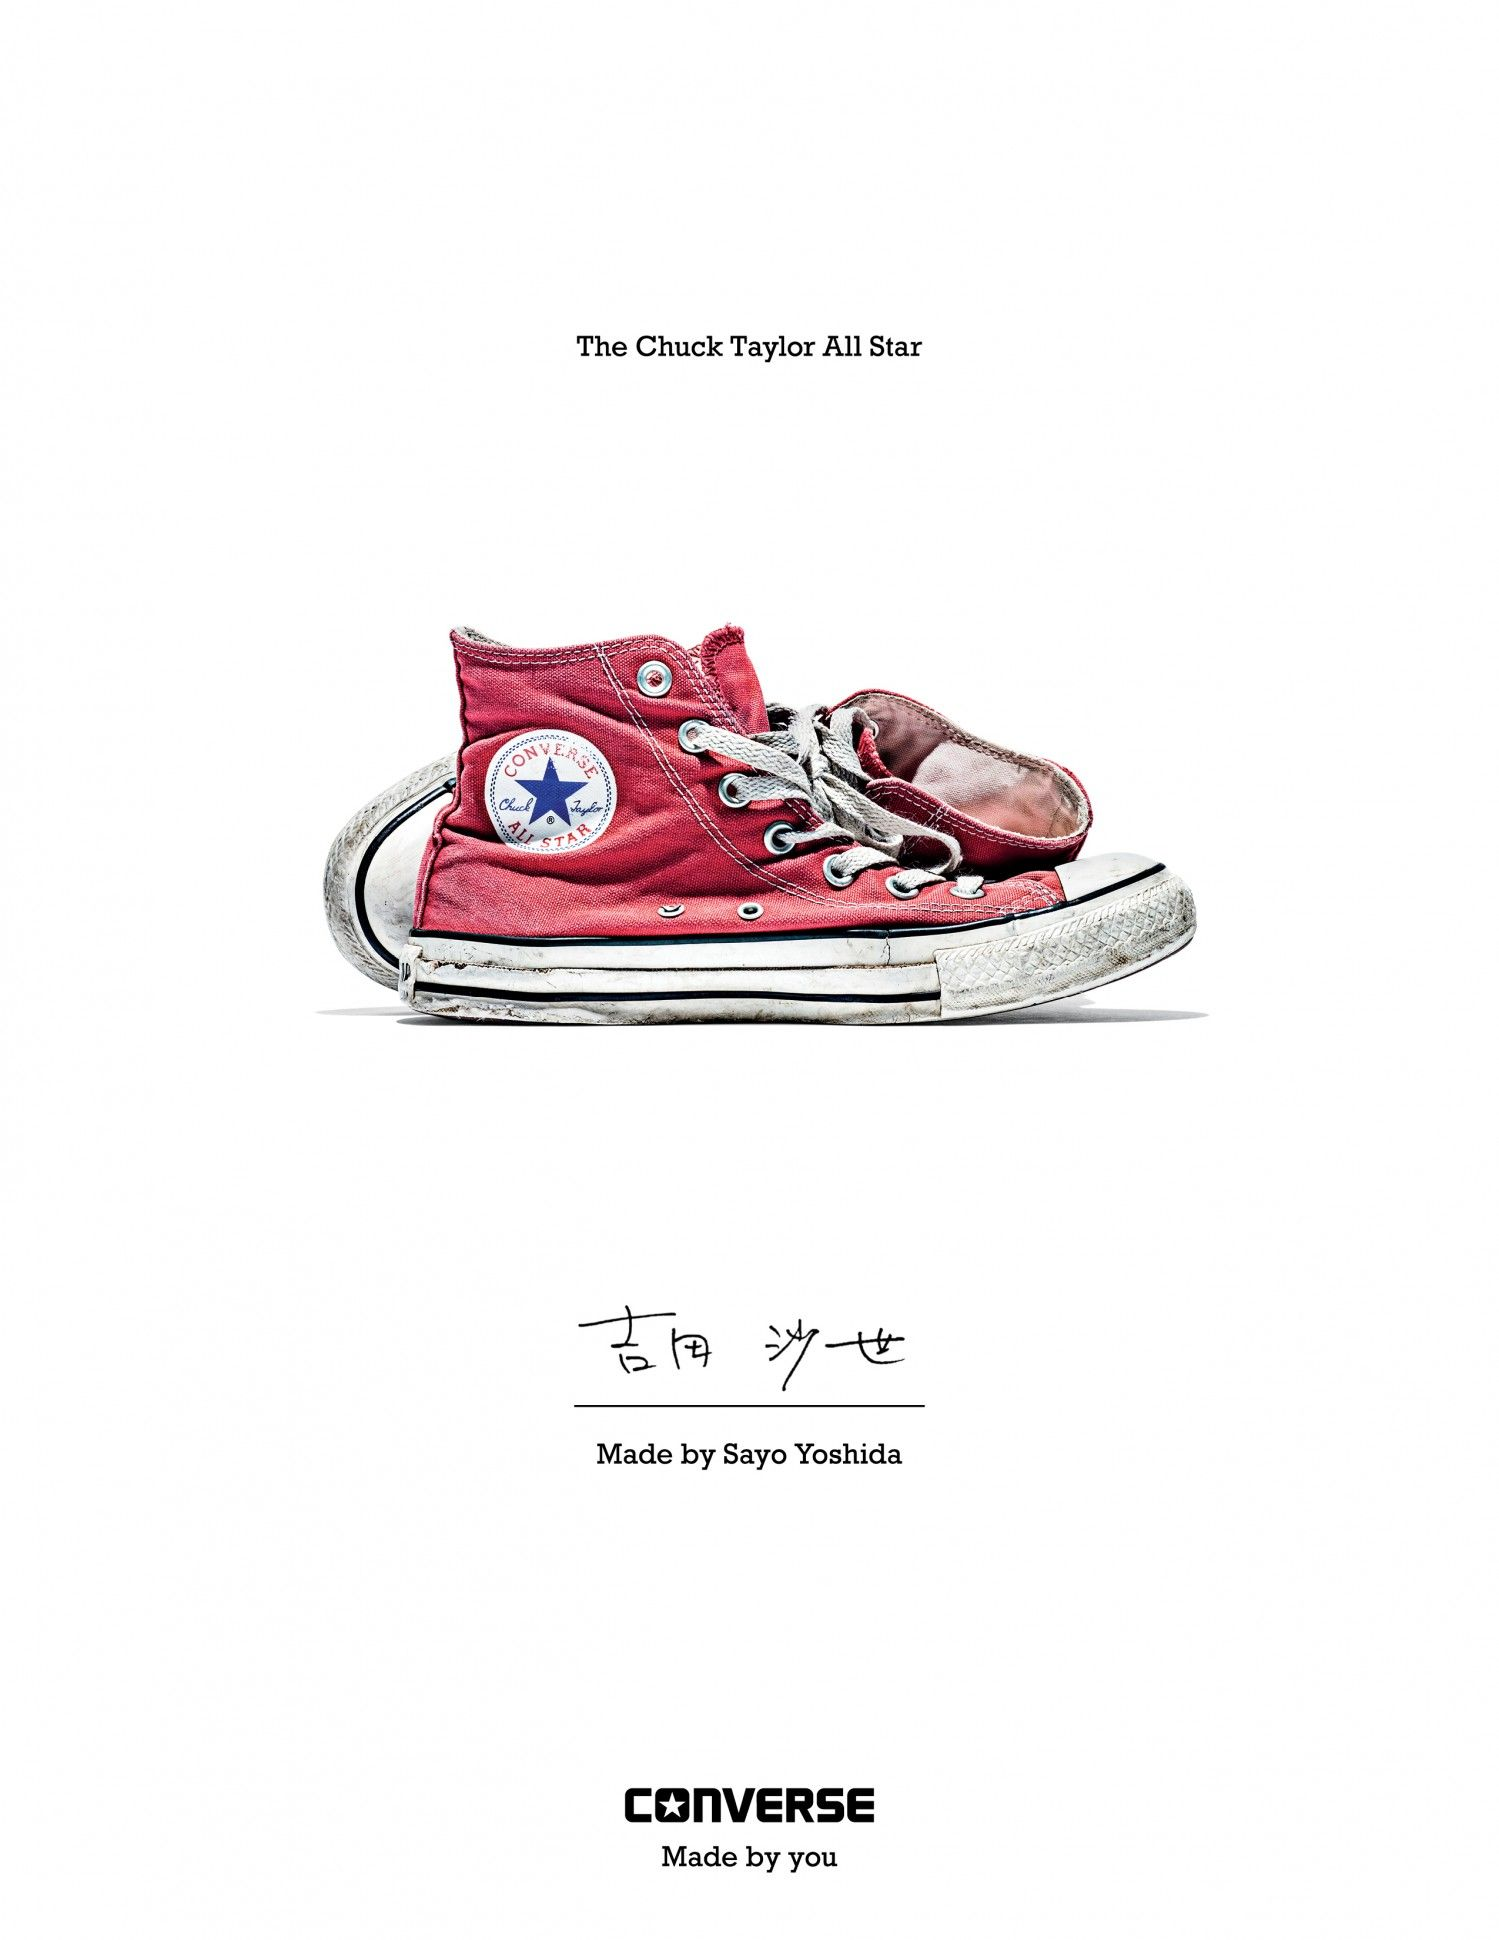 529428d7fcfa Discover ideas about Shoes Gif. Chuck Taylor converse sneakers made by you  dropbear